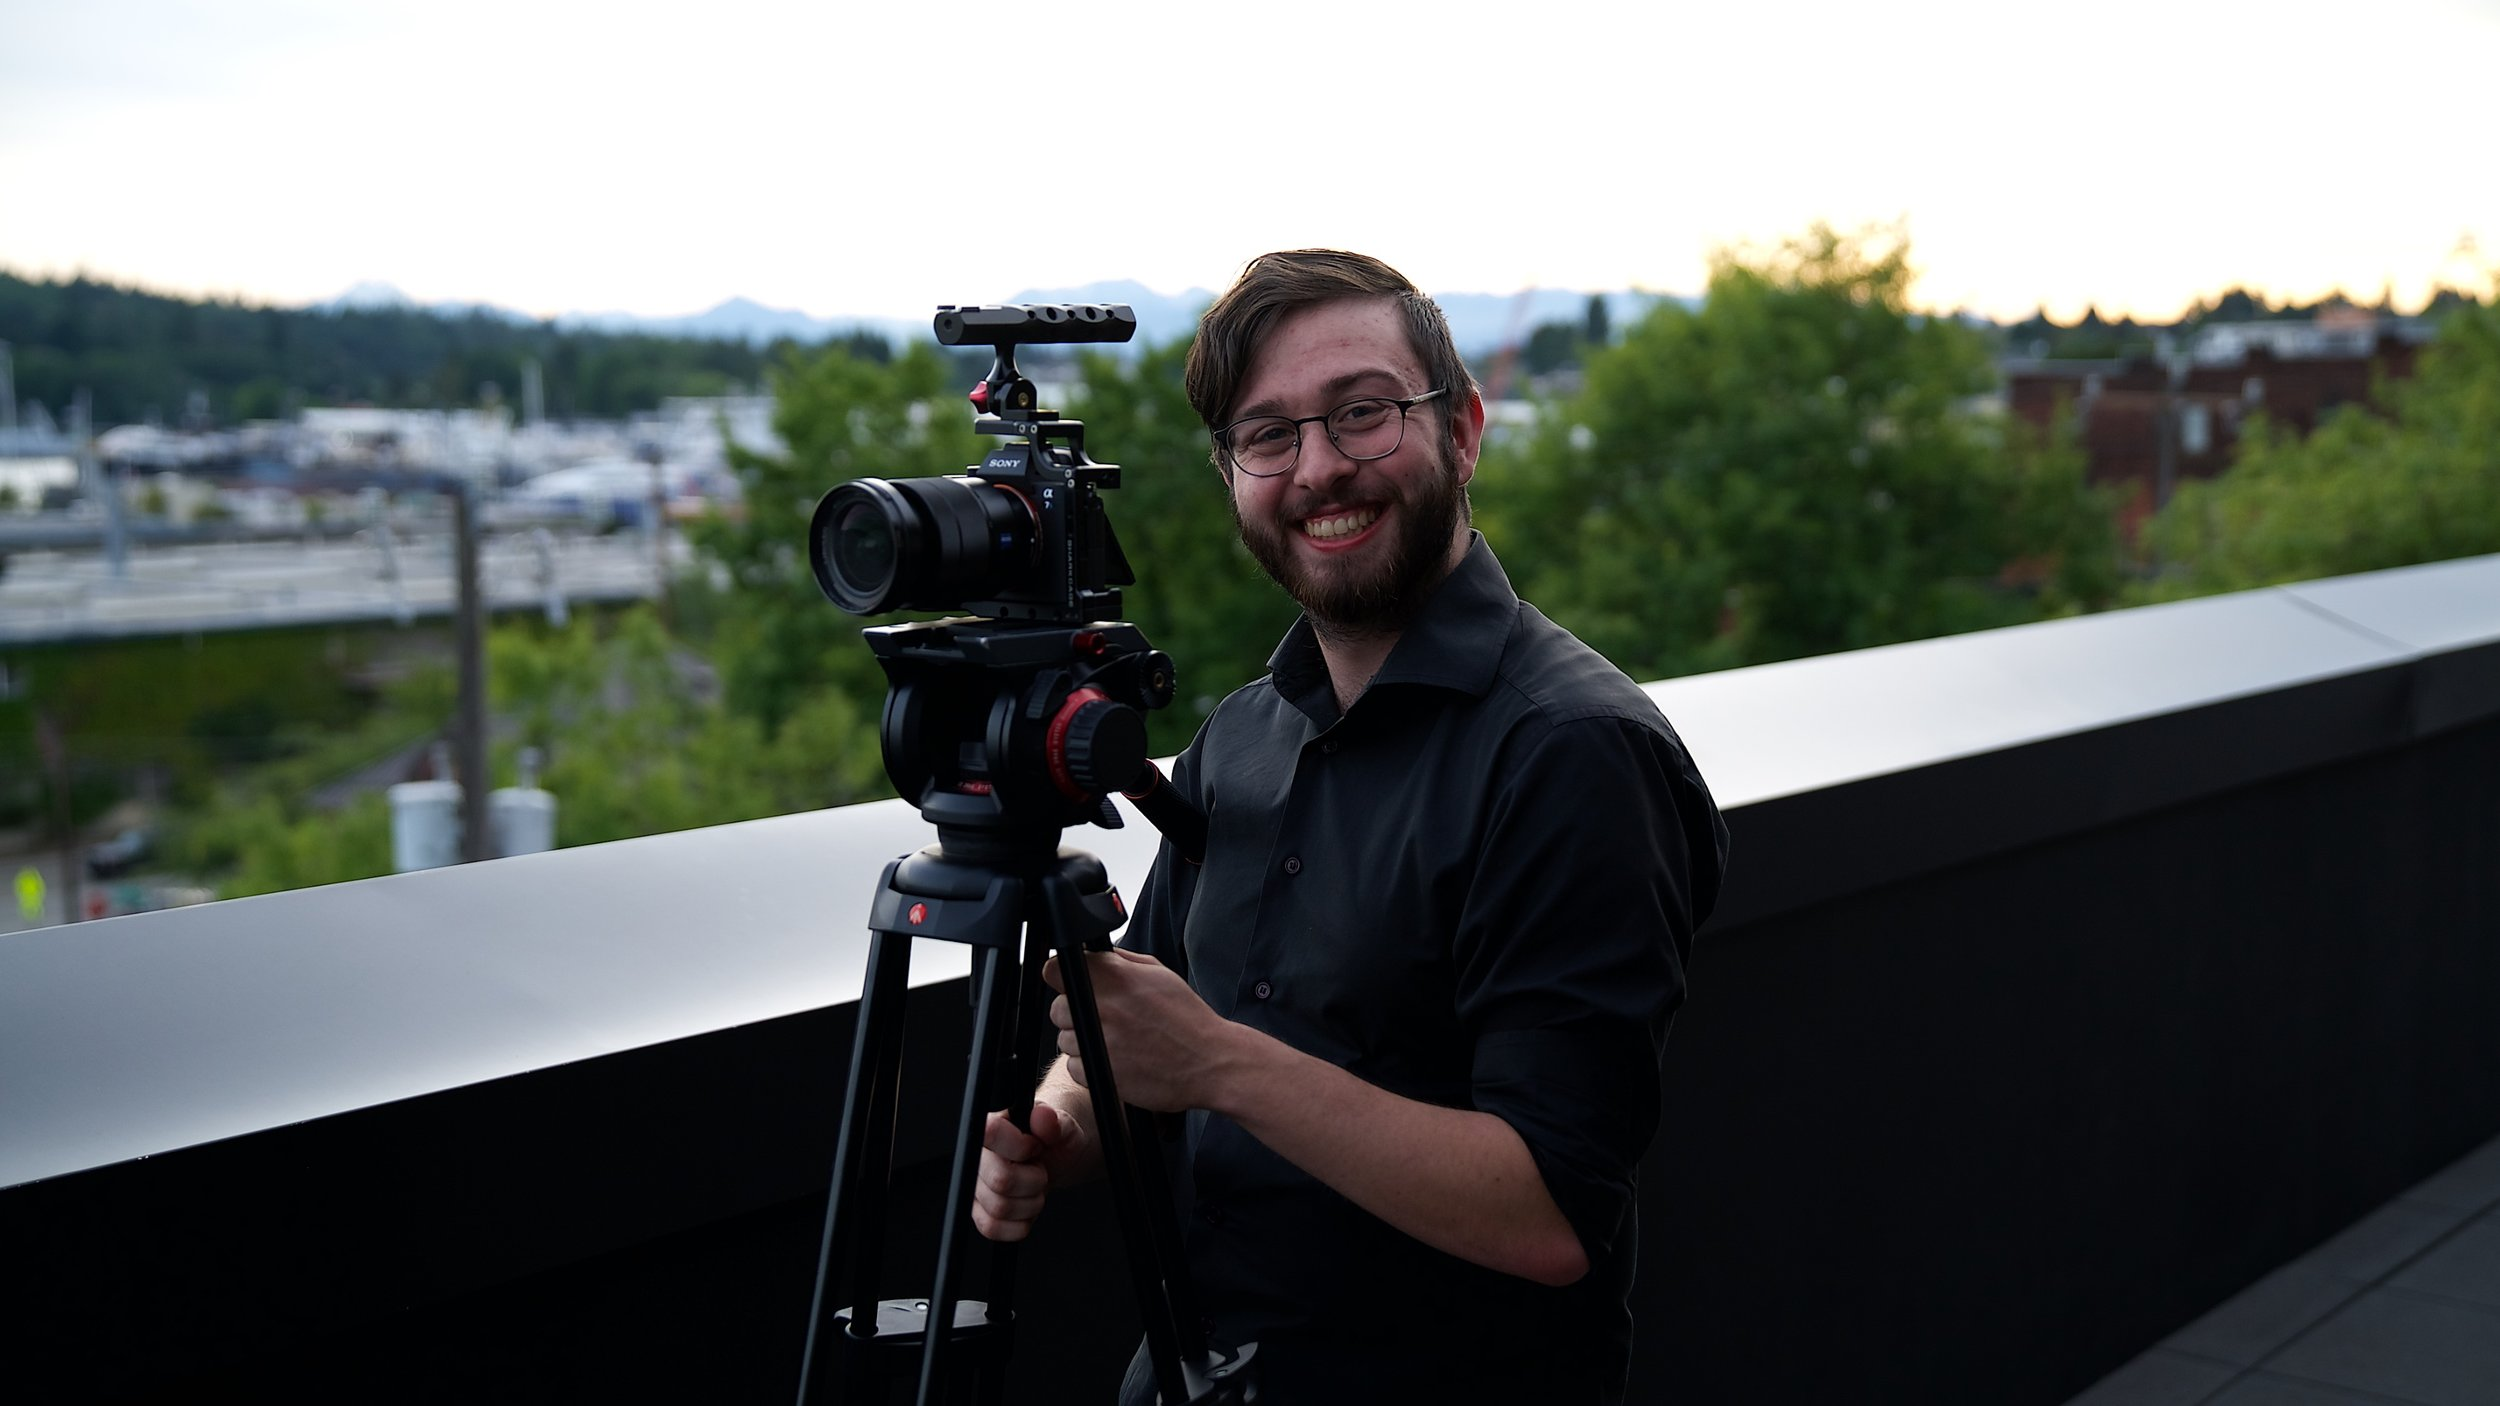 Joel Kaehler - Wedding Videography Assistant